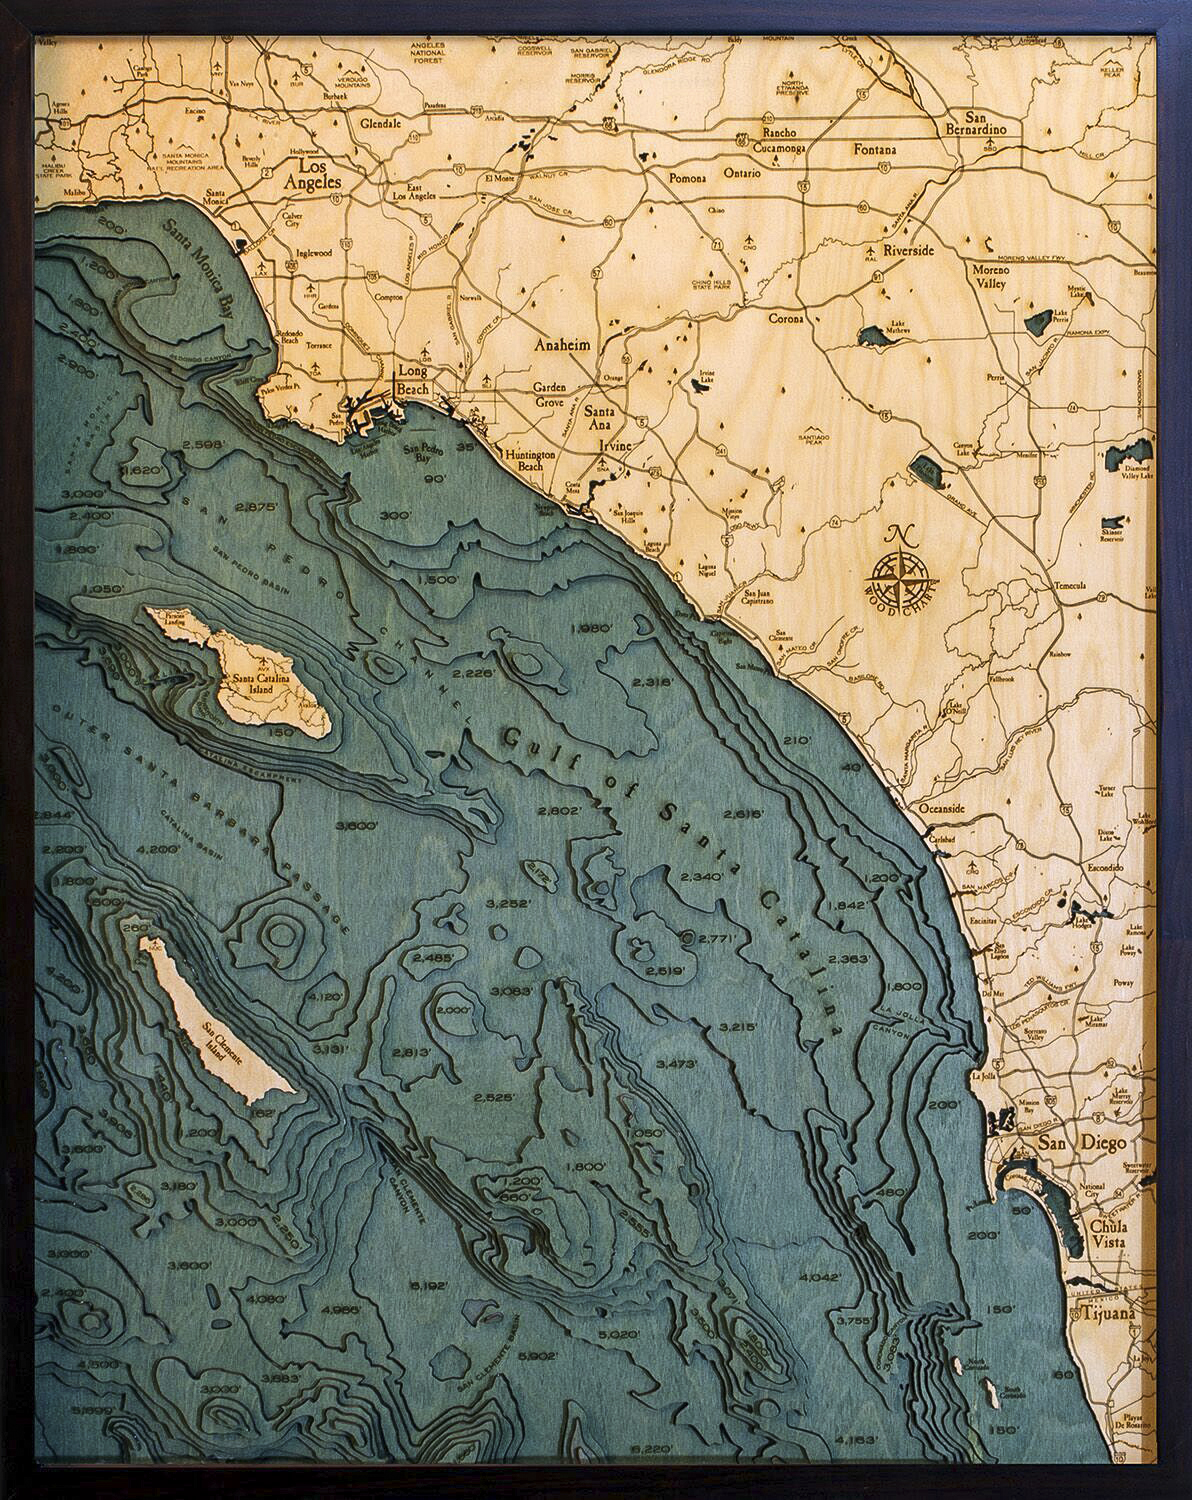 Bathymetric Map Los Angeles to San Diego, California